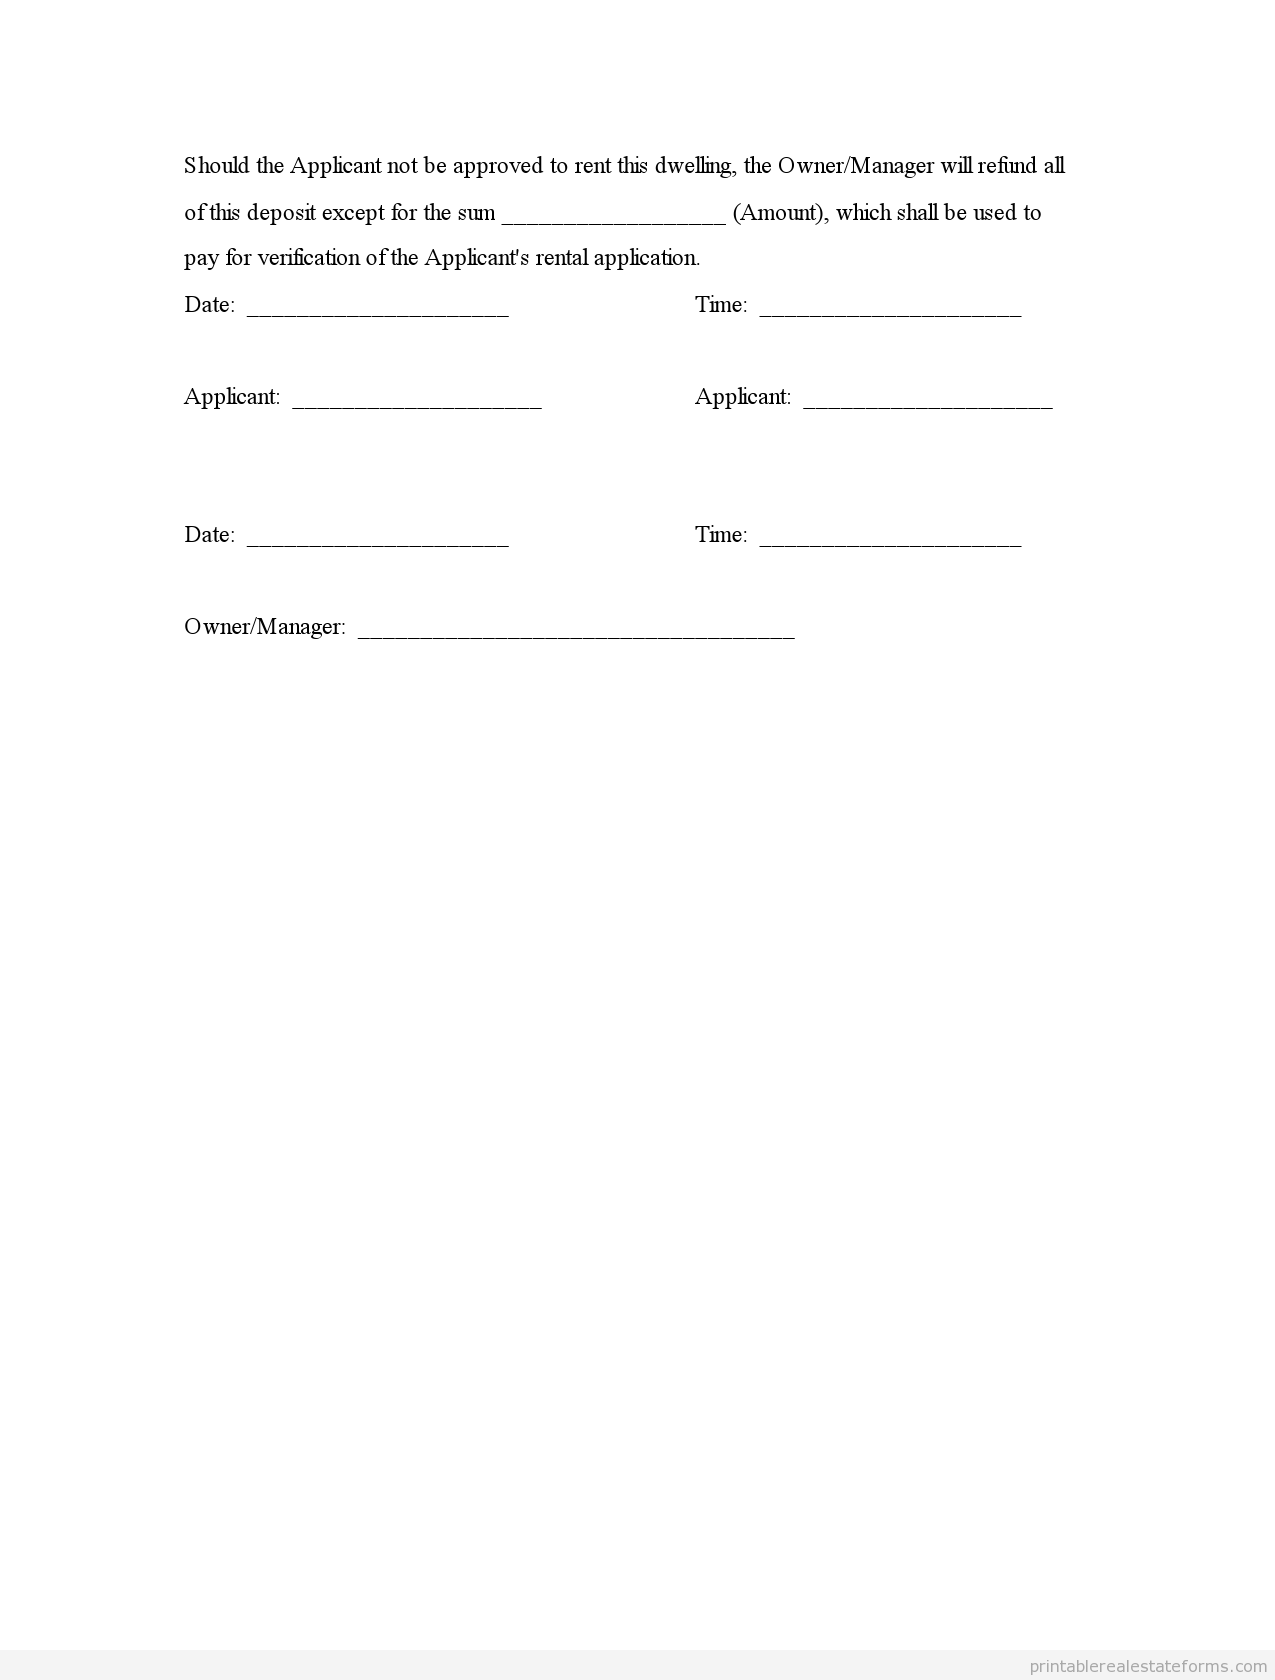 Sample Printable Deposit Receipt And Agreement Form  Printable